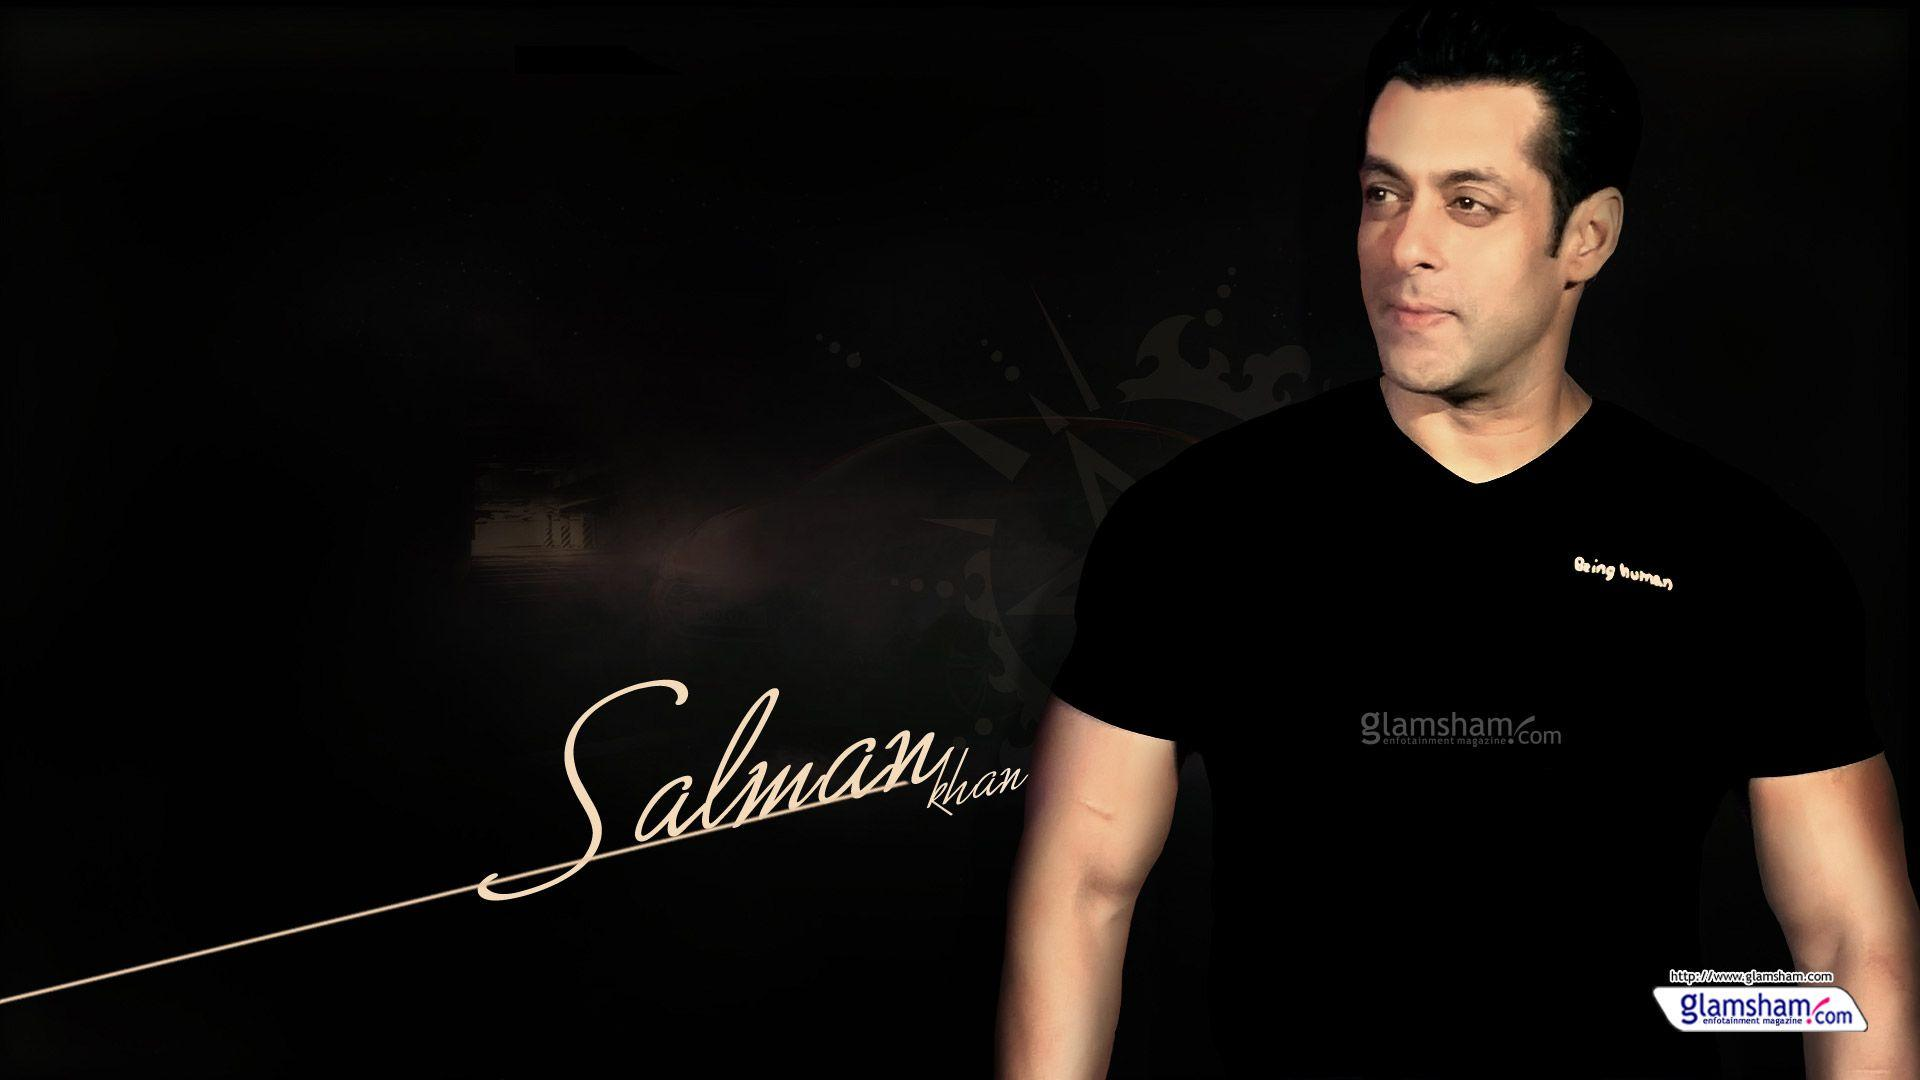 Salman Khan Hd Wallpapers 1920X1080 wallpapers 1238342